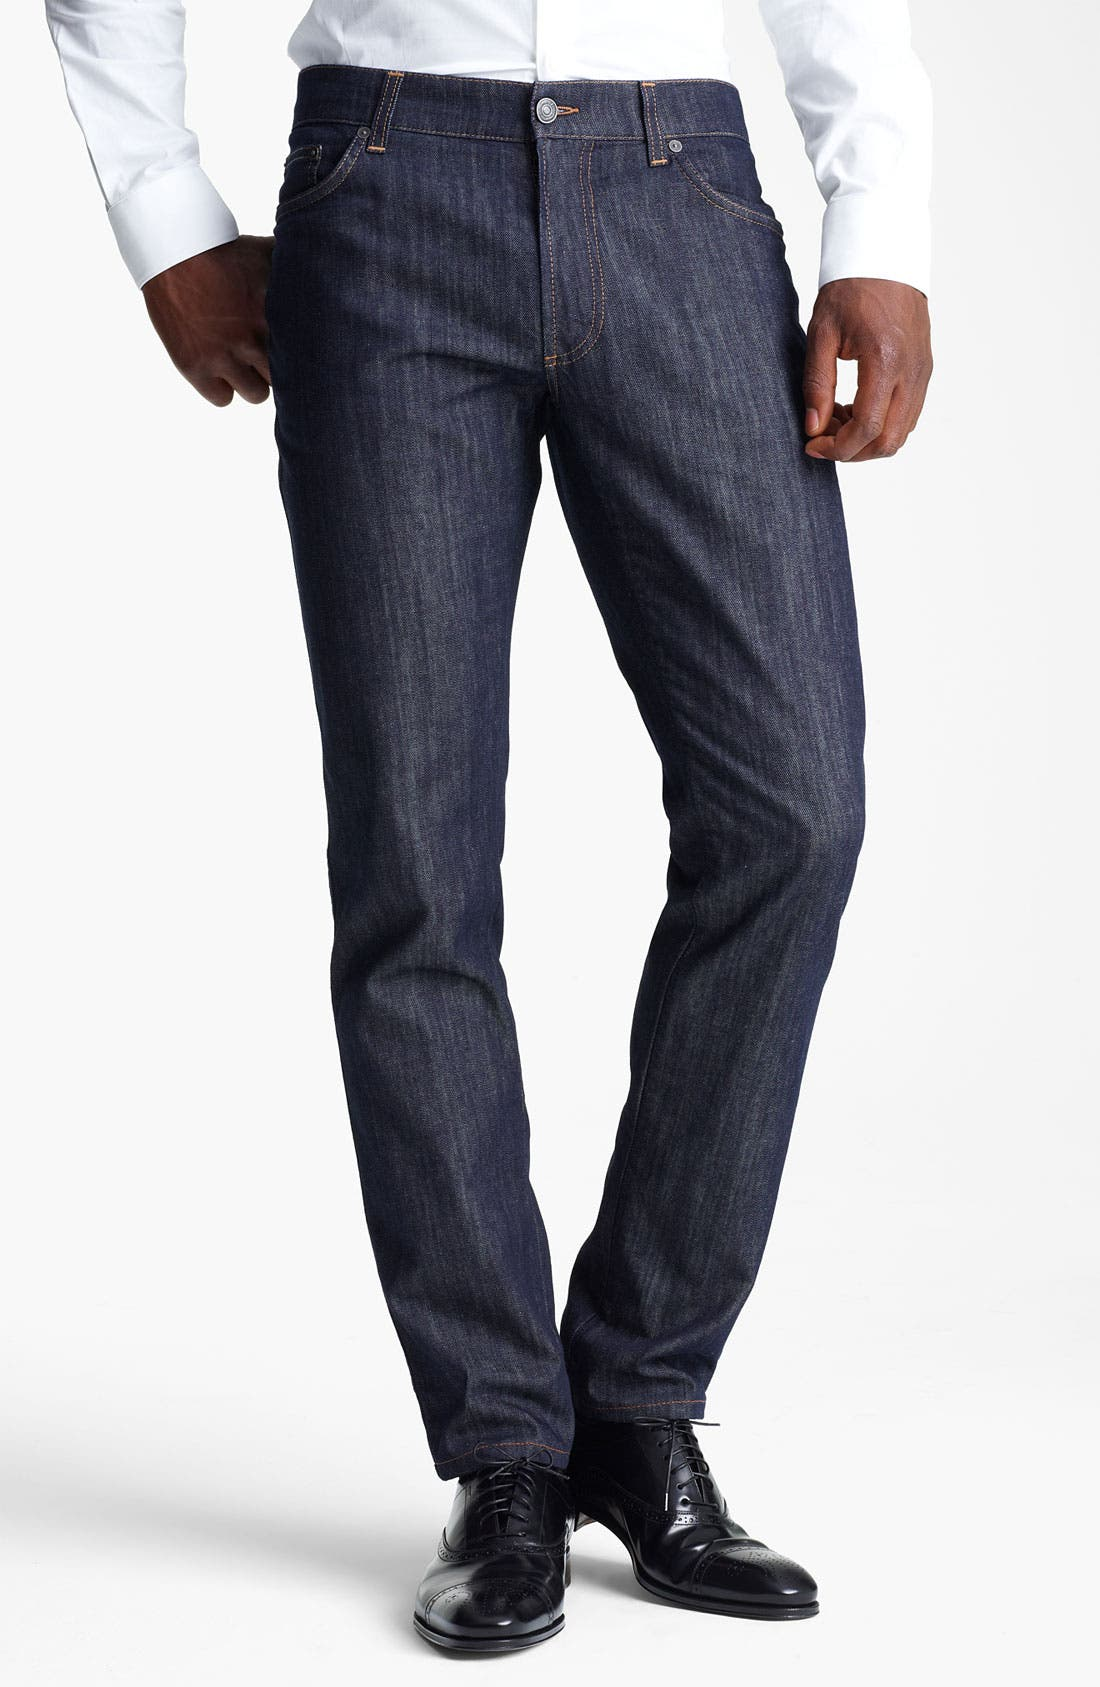 Alternate Image 1 Selected - Salvatore Ferragamo 'Typology' Straight Leg Jeans (Navy)